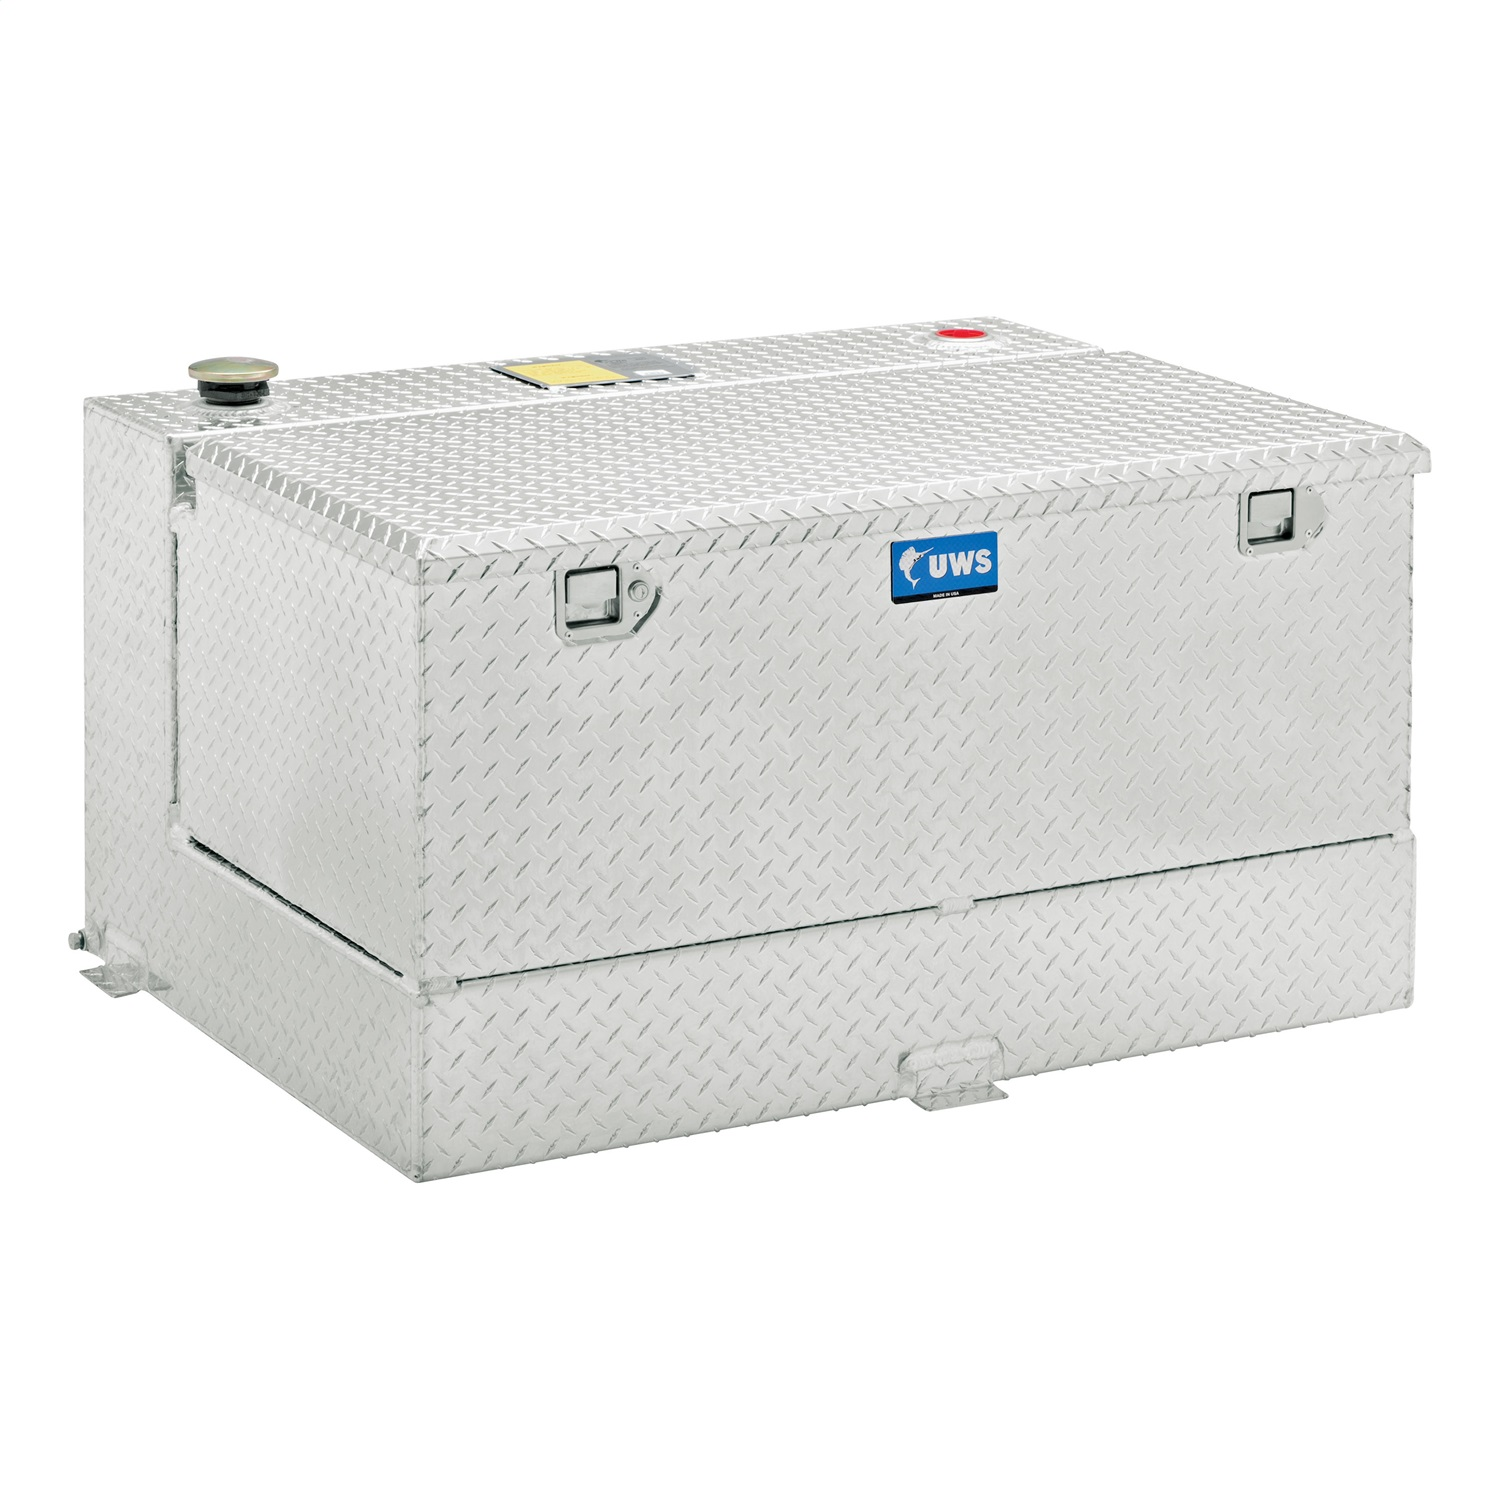 Combination Liquid Transfer Tank/Tool Box, Volume 45 Gallons, L 54 in. x W 18 in. x H 12 in., Silver